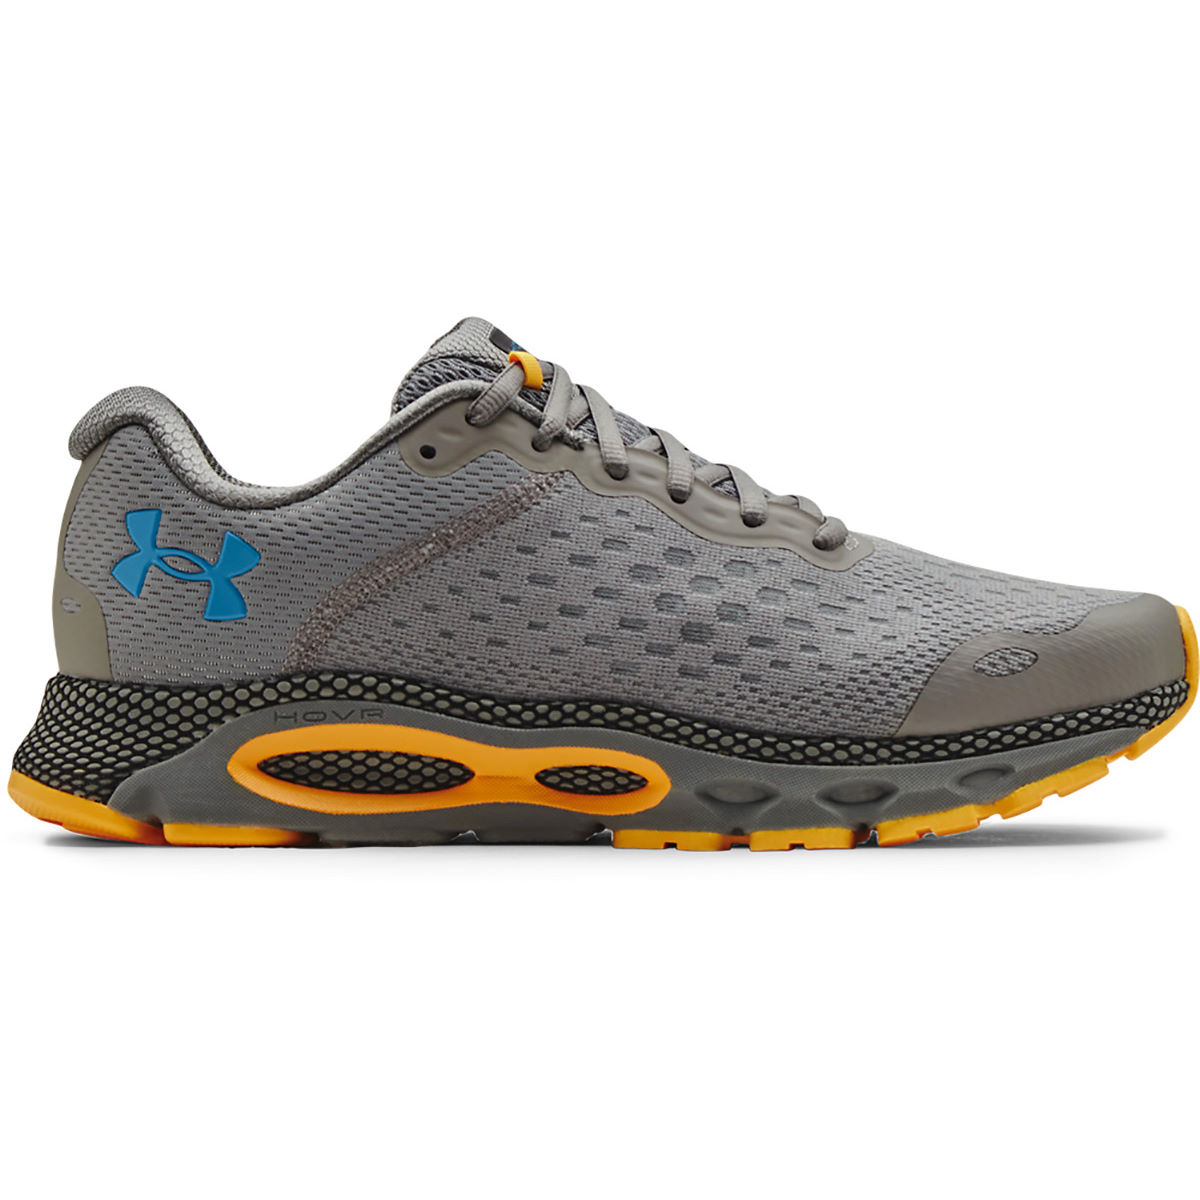 Under Armour HOVR Infinite 3 Running Shoes   Running Shoes